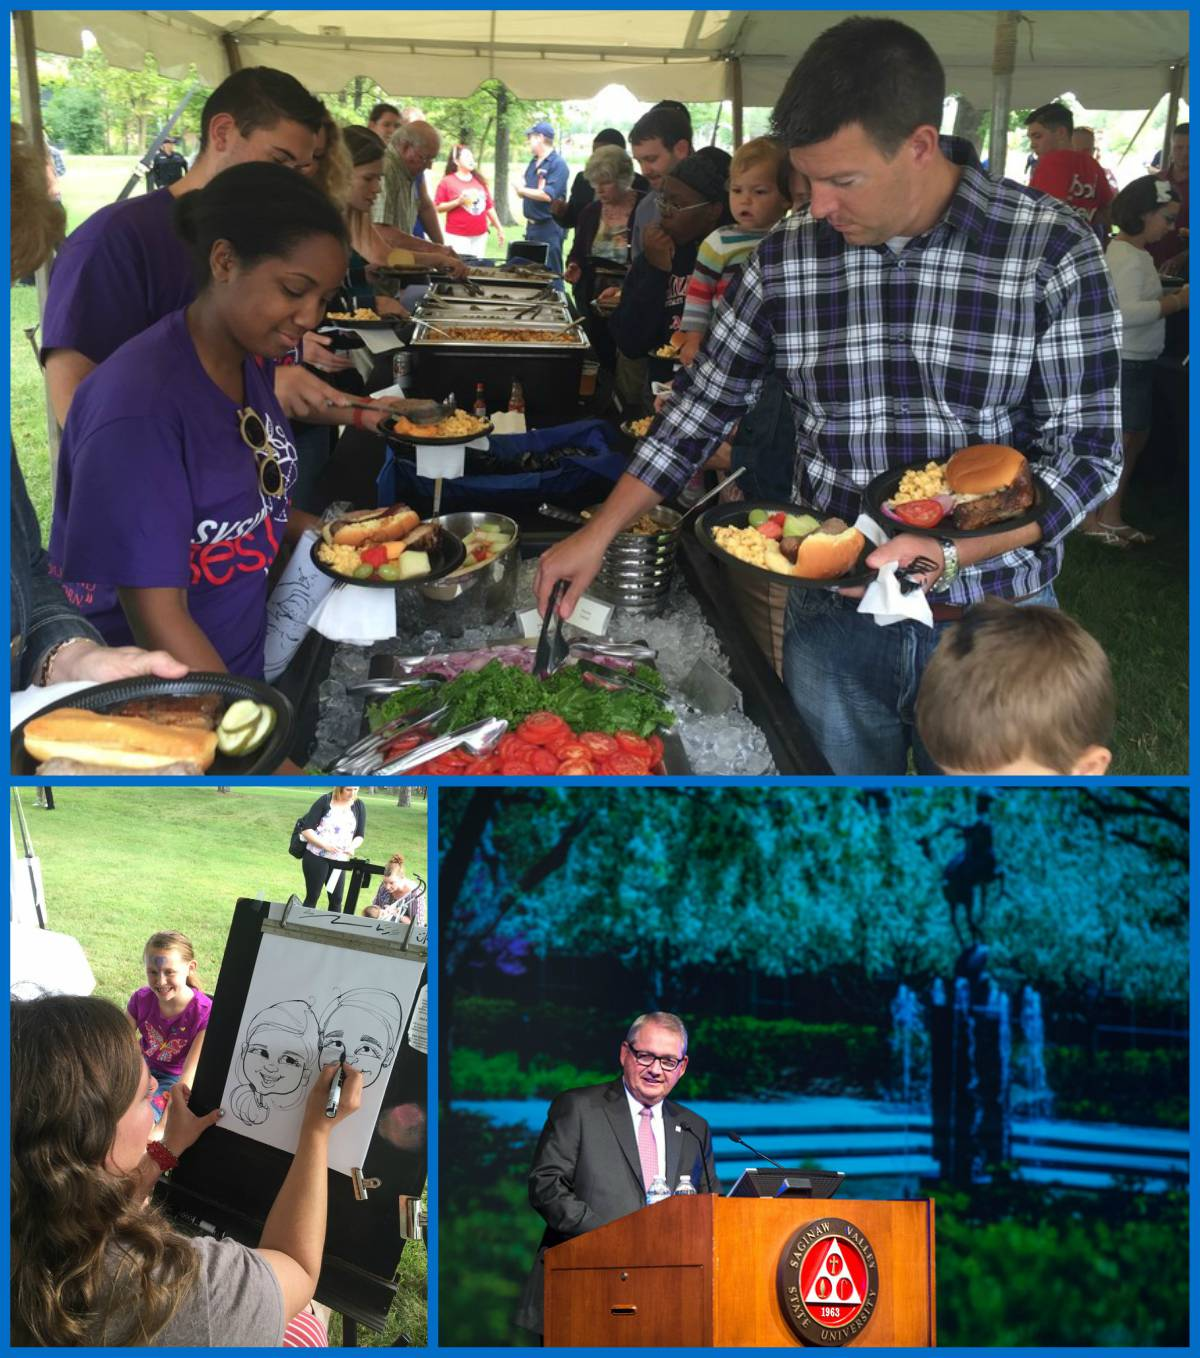 Collage of images of families enjoying the Annual Welcome Back address and picnic scheduled for Thursday, Aug. 24